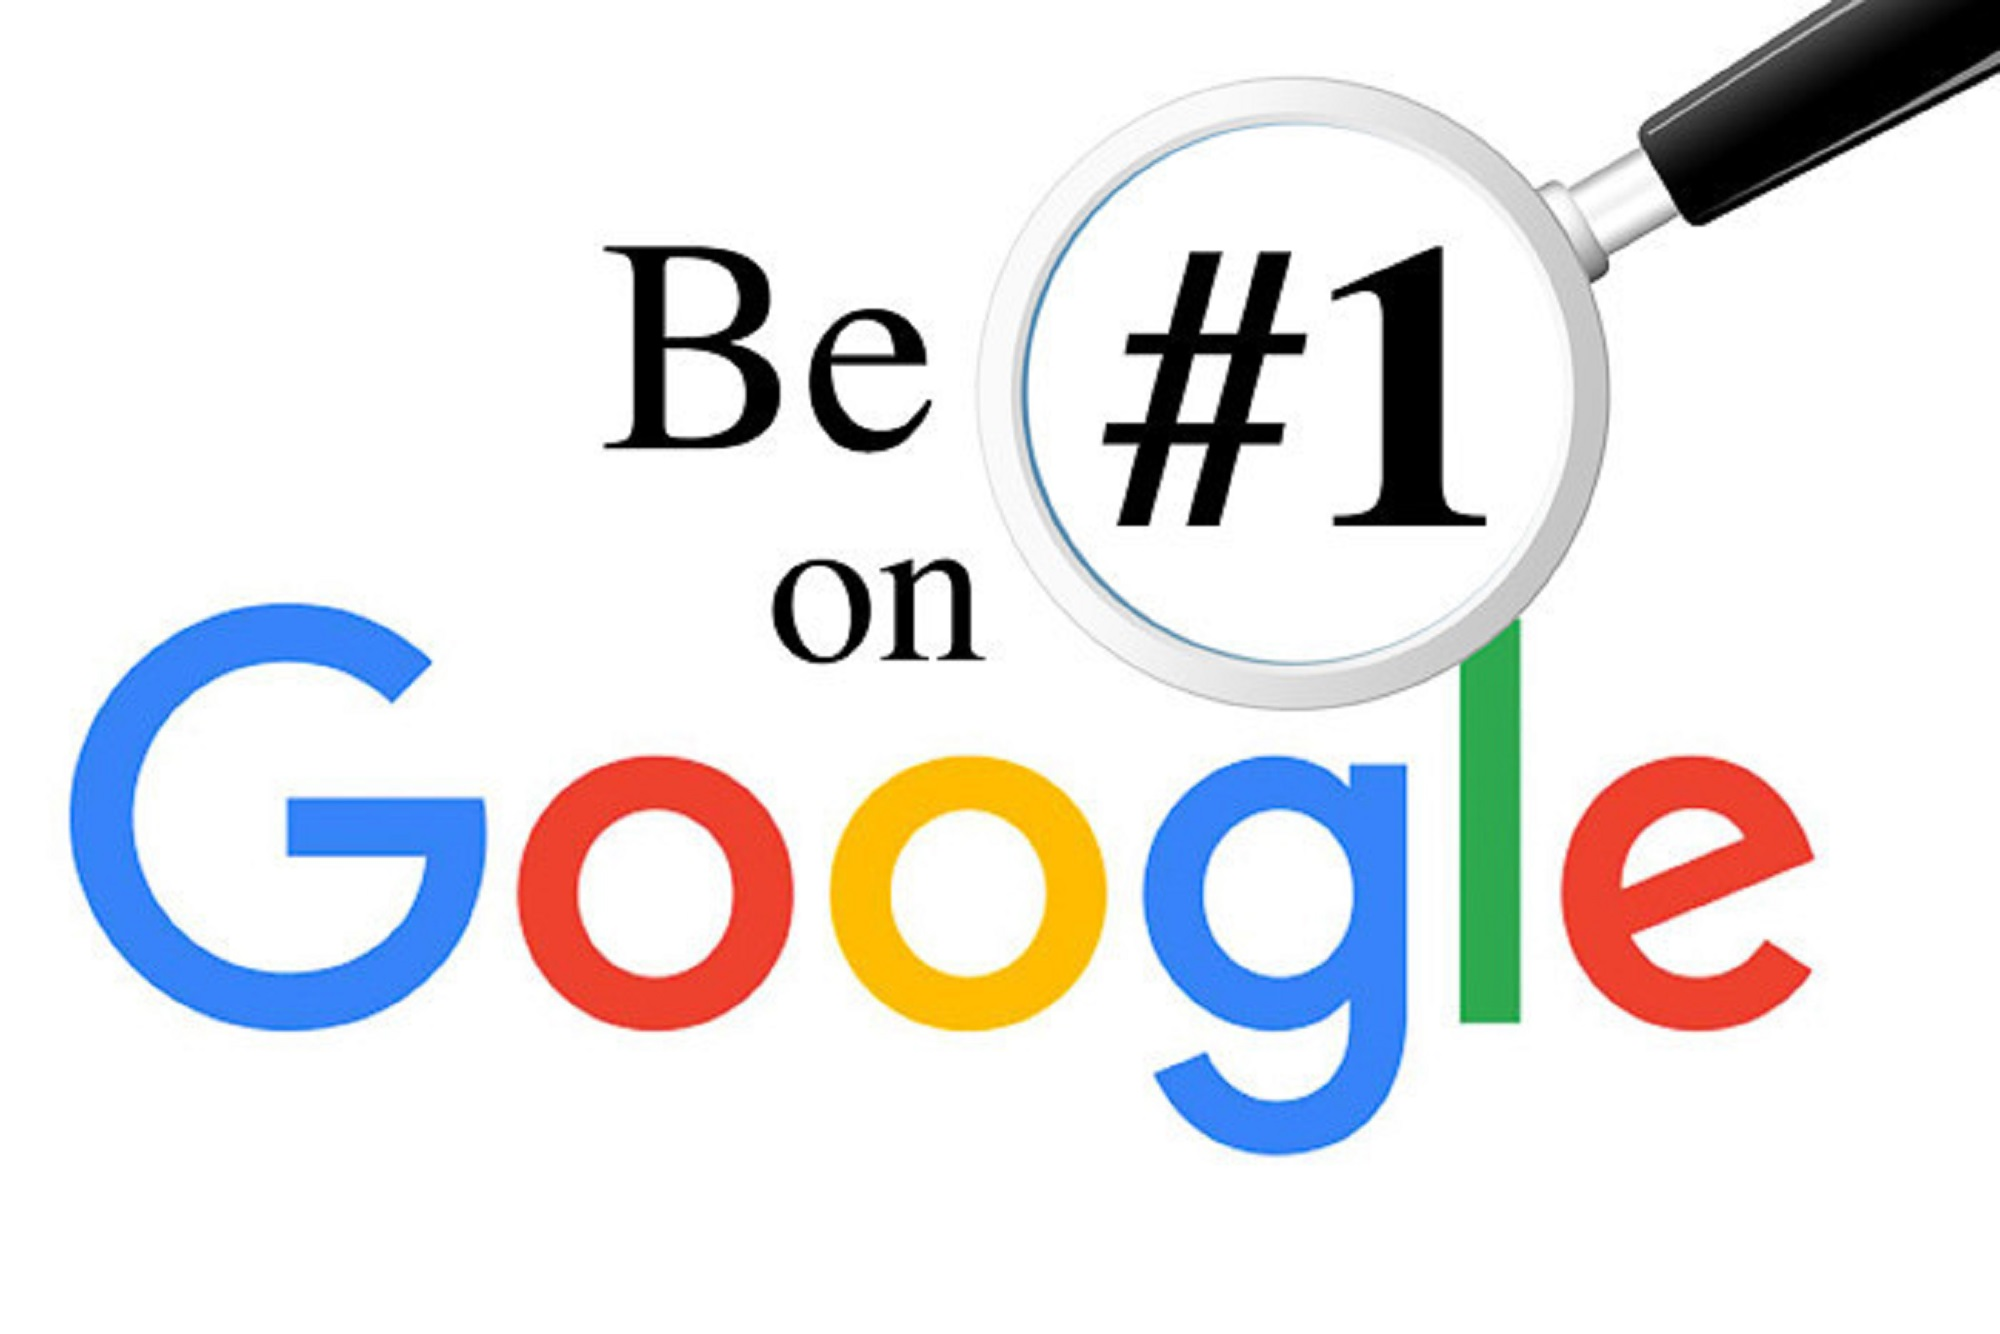 1000 high quality backlinks - rank 1 on Google